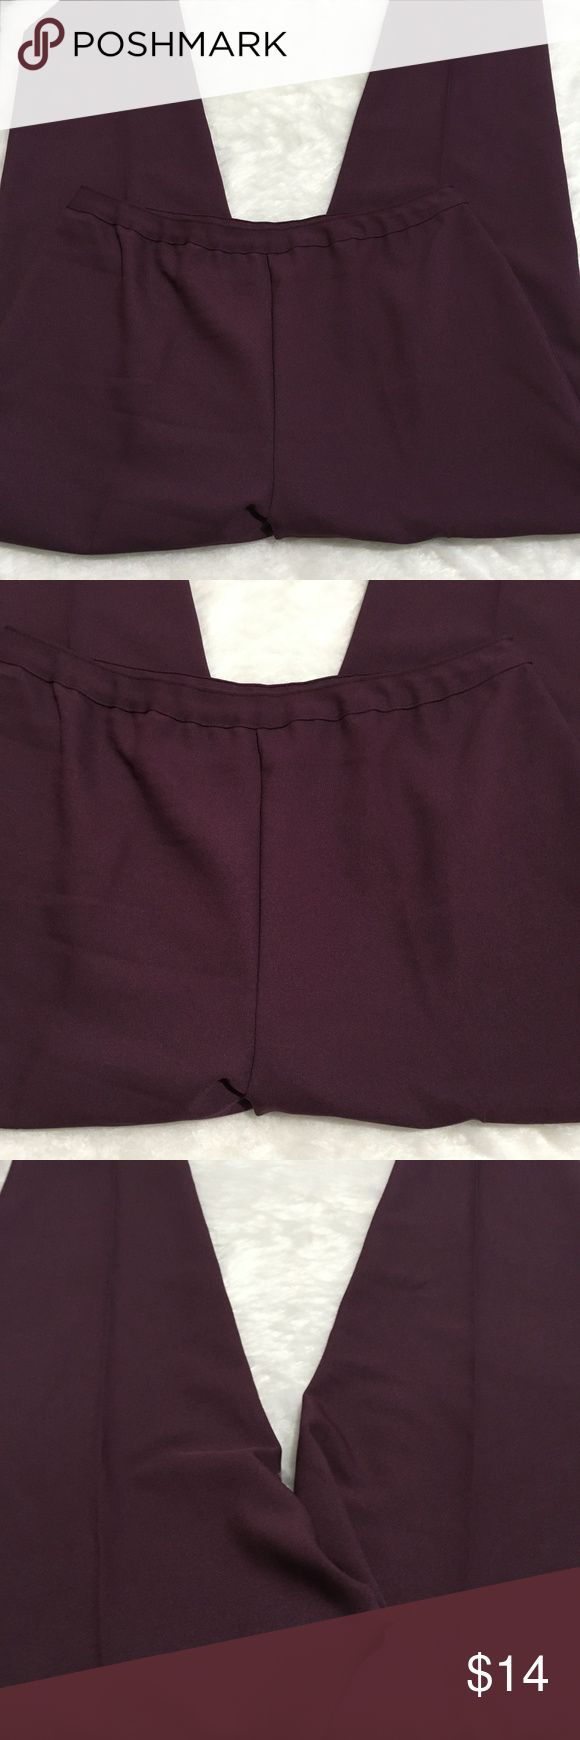 "BEND OVER SIZE 22 TALL WOMEN'S DRESS PANTS BEND OVER SIZE 22W TALL WOMEN'S purple DRESS PANTS   gently used with no flaws.   waist laying flat- 18"" rise- 14"" rear rise-16"" inseam- 31 t6-16 Pants Trousers"